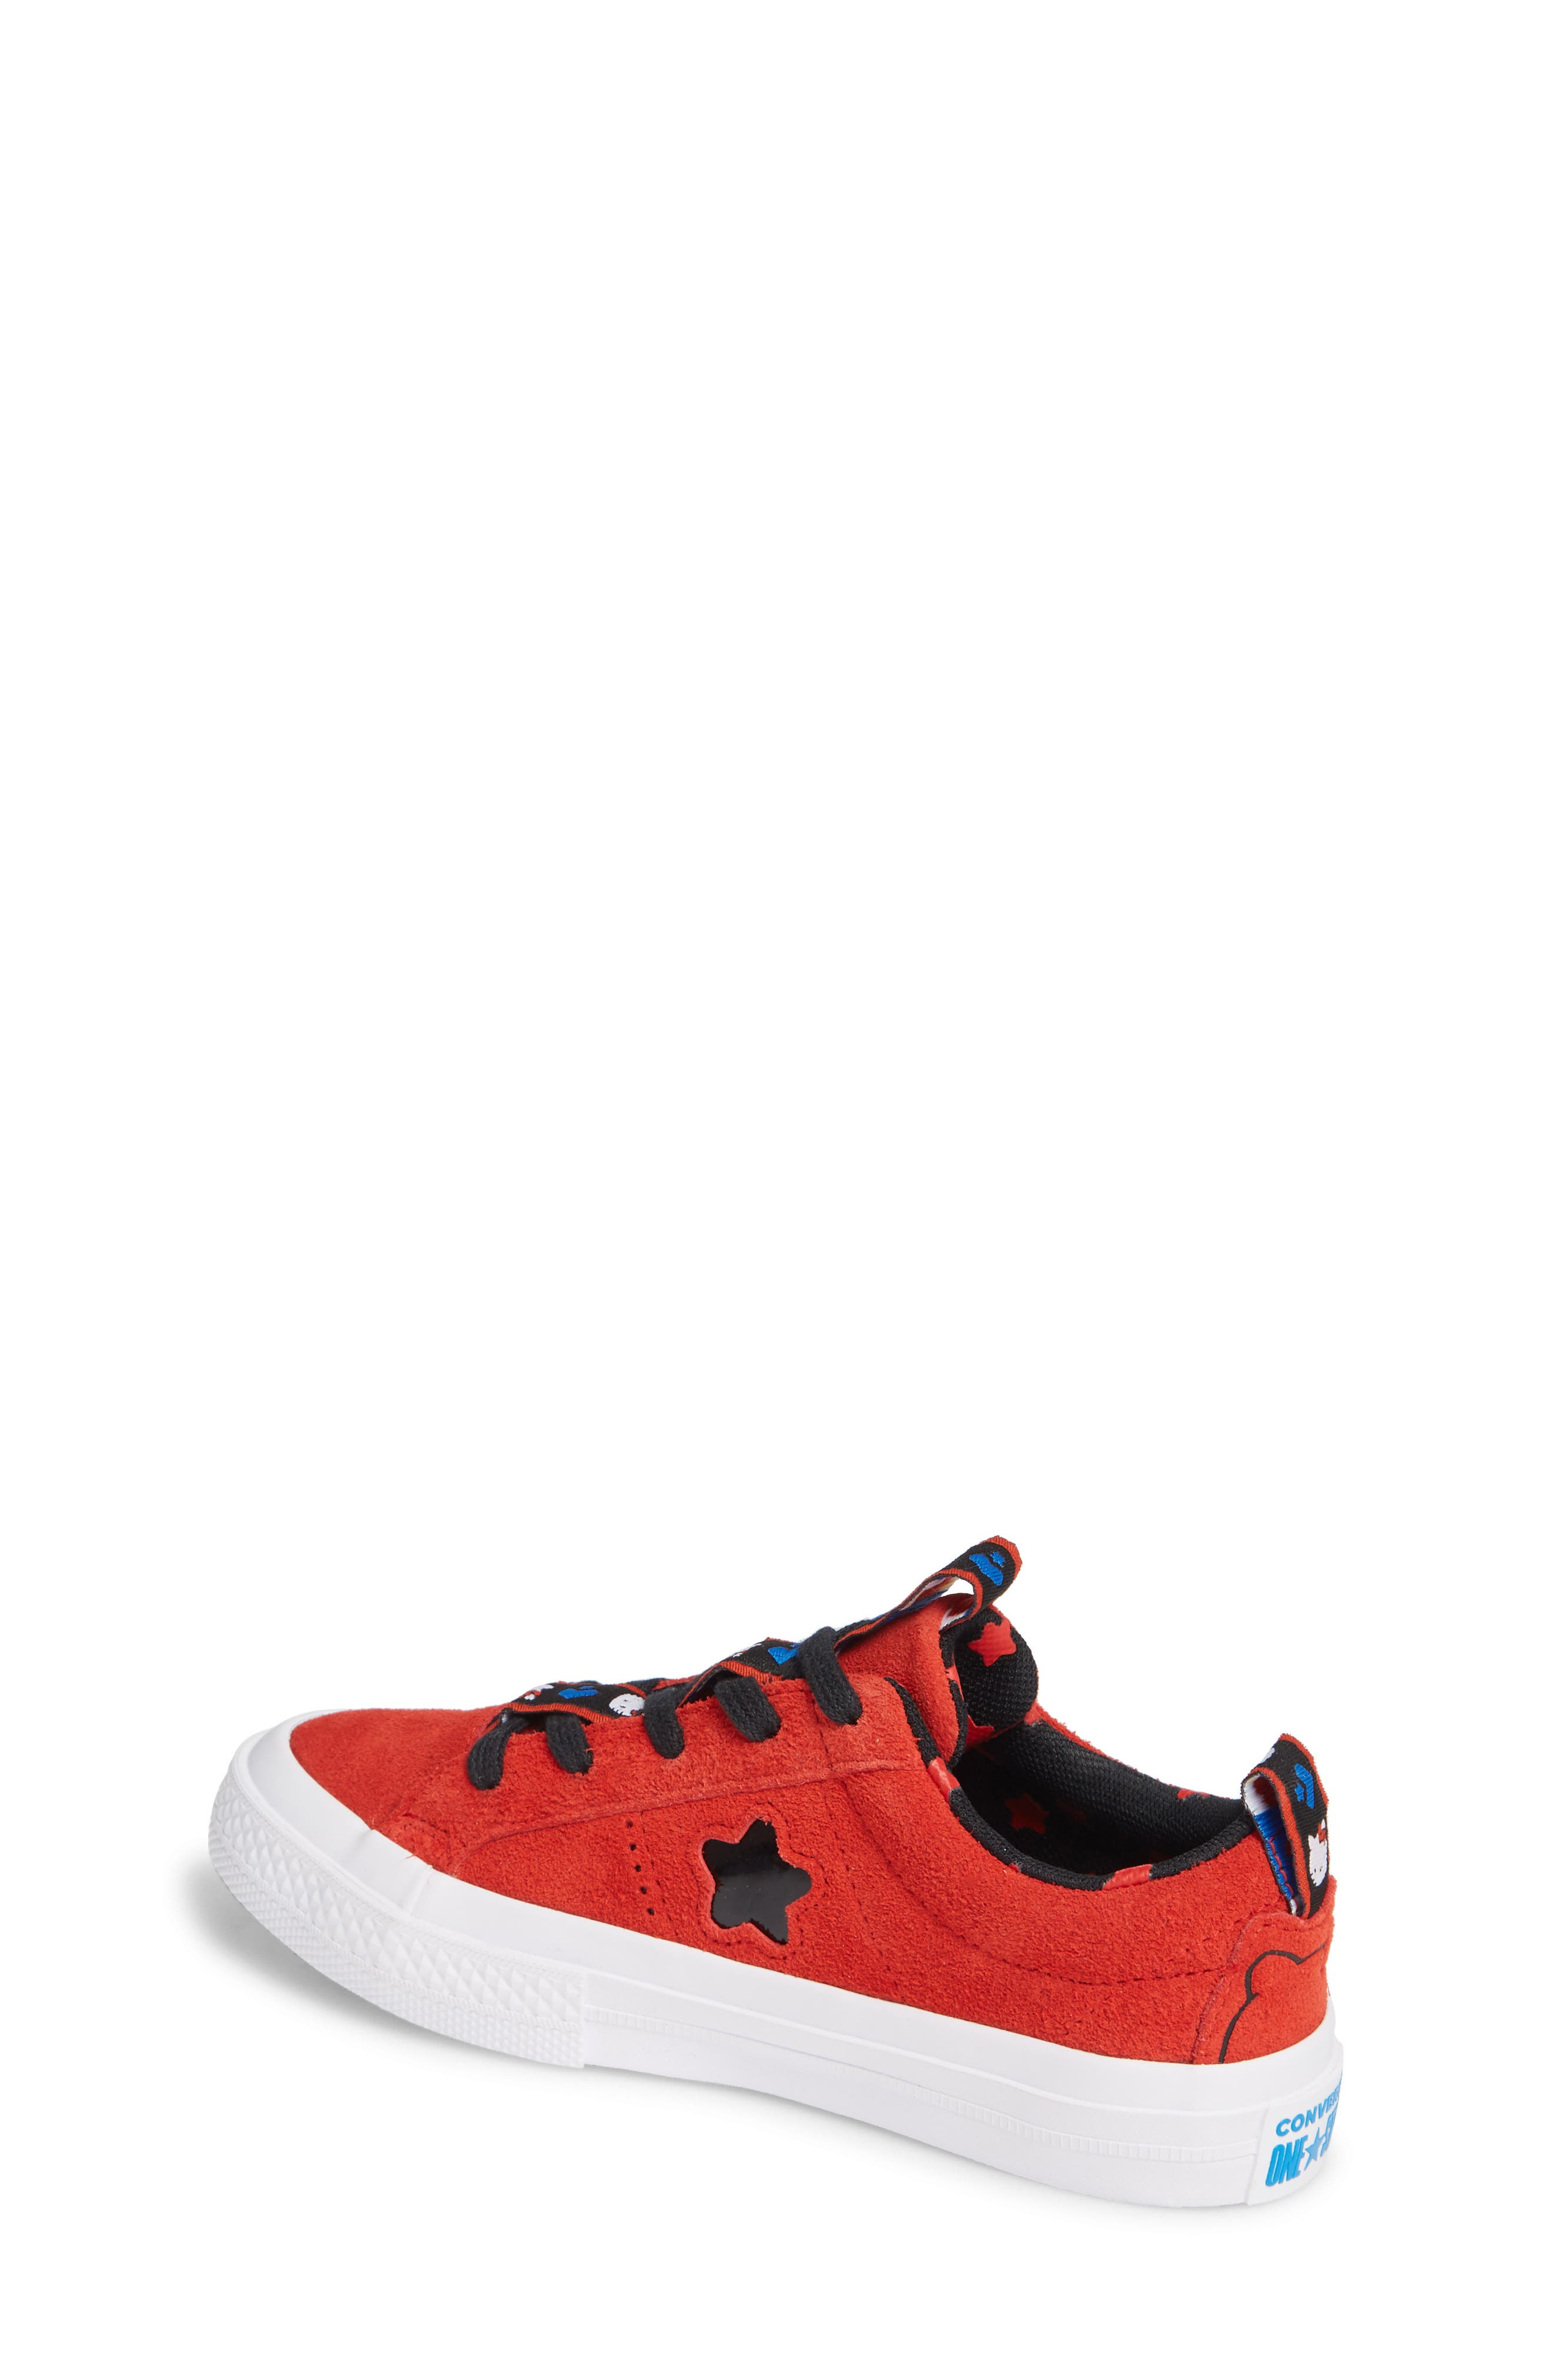 x Hello Kitty<sup>®</sup> One Star Low Top Sneaker,                             Alternate thumbnail 2, color,                             FIERY RED SUEDE